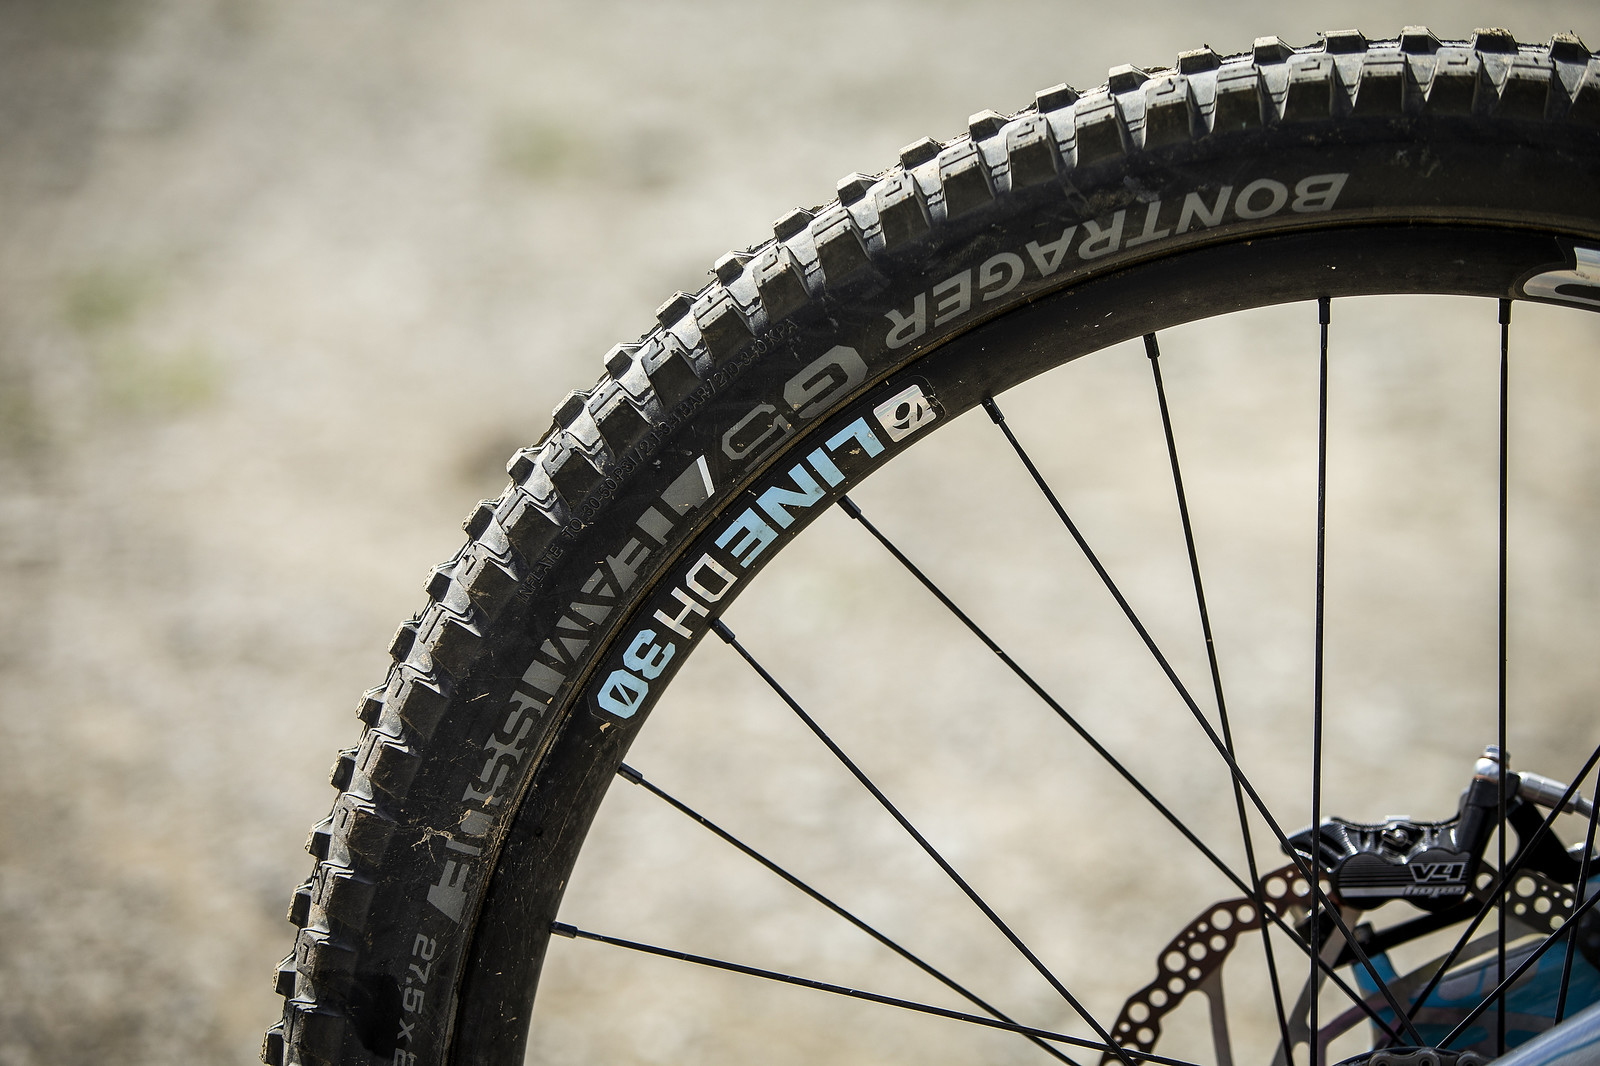 Bontrager G5 Team Issue Tires - WINNING BIKE - Rachel Atherton's Trek Session - Mountain Biking Pictures - Vital MTB